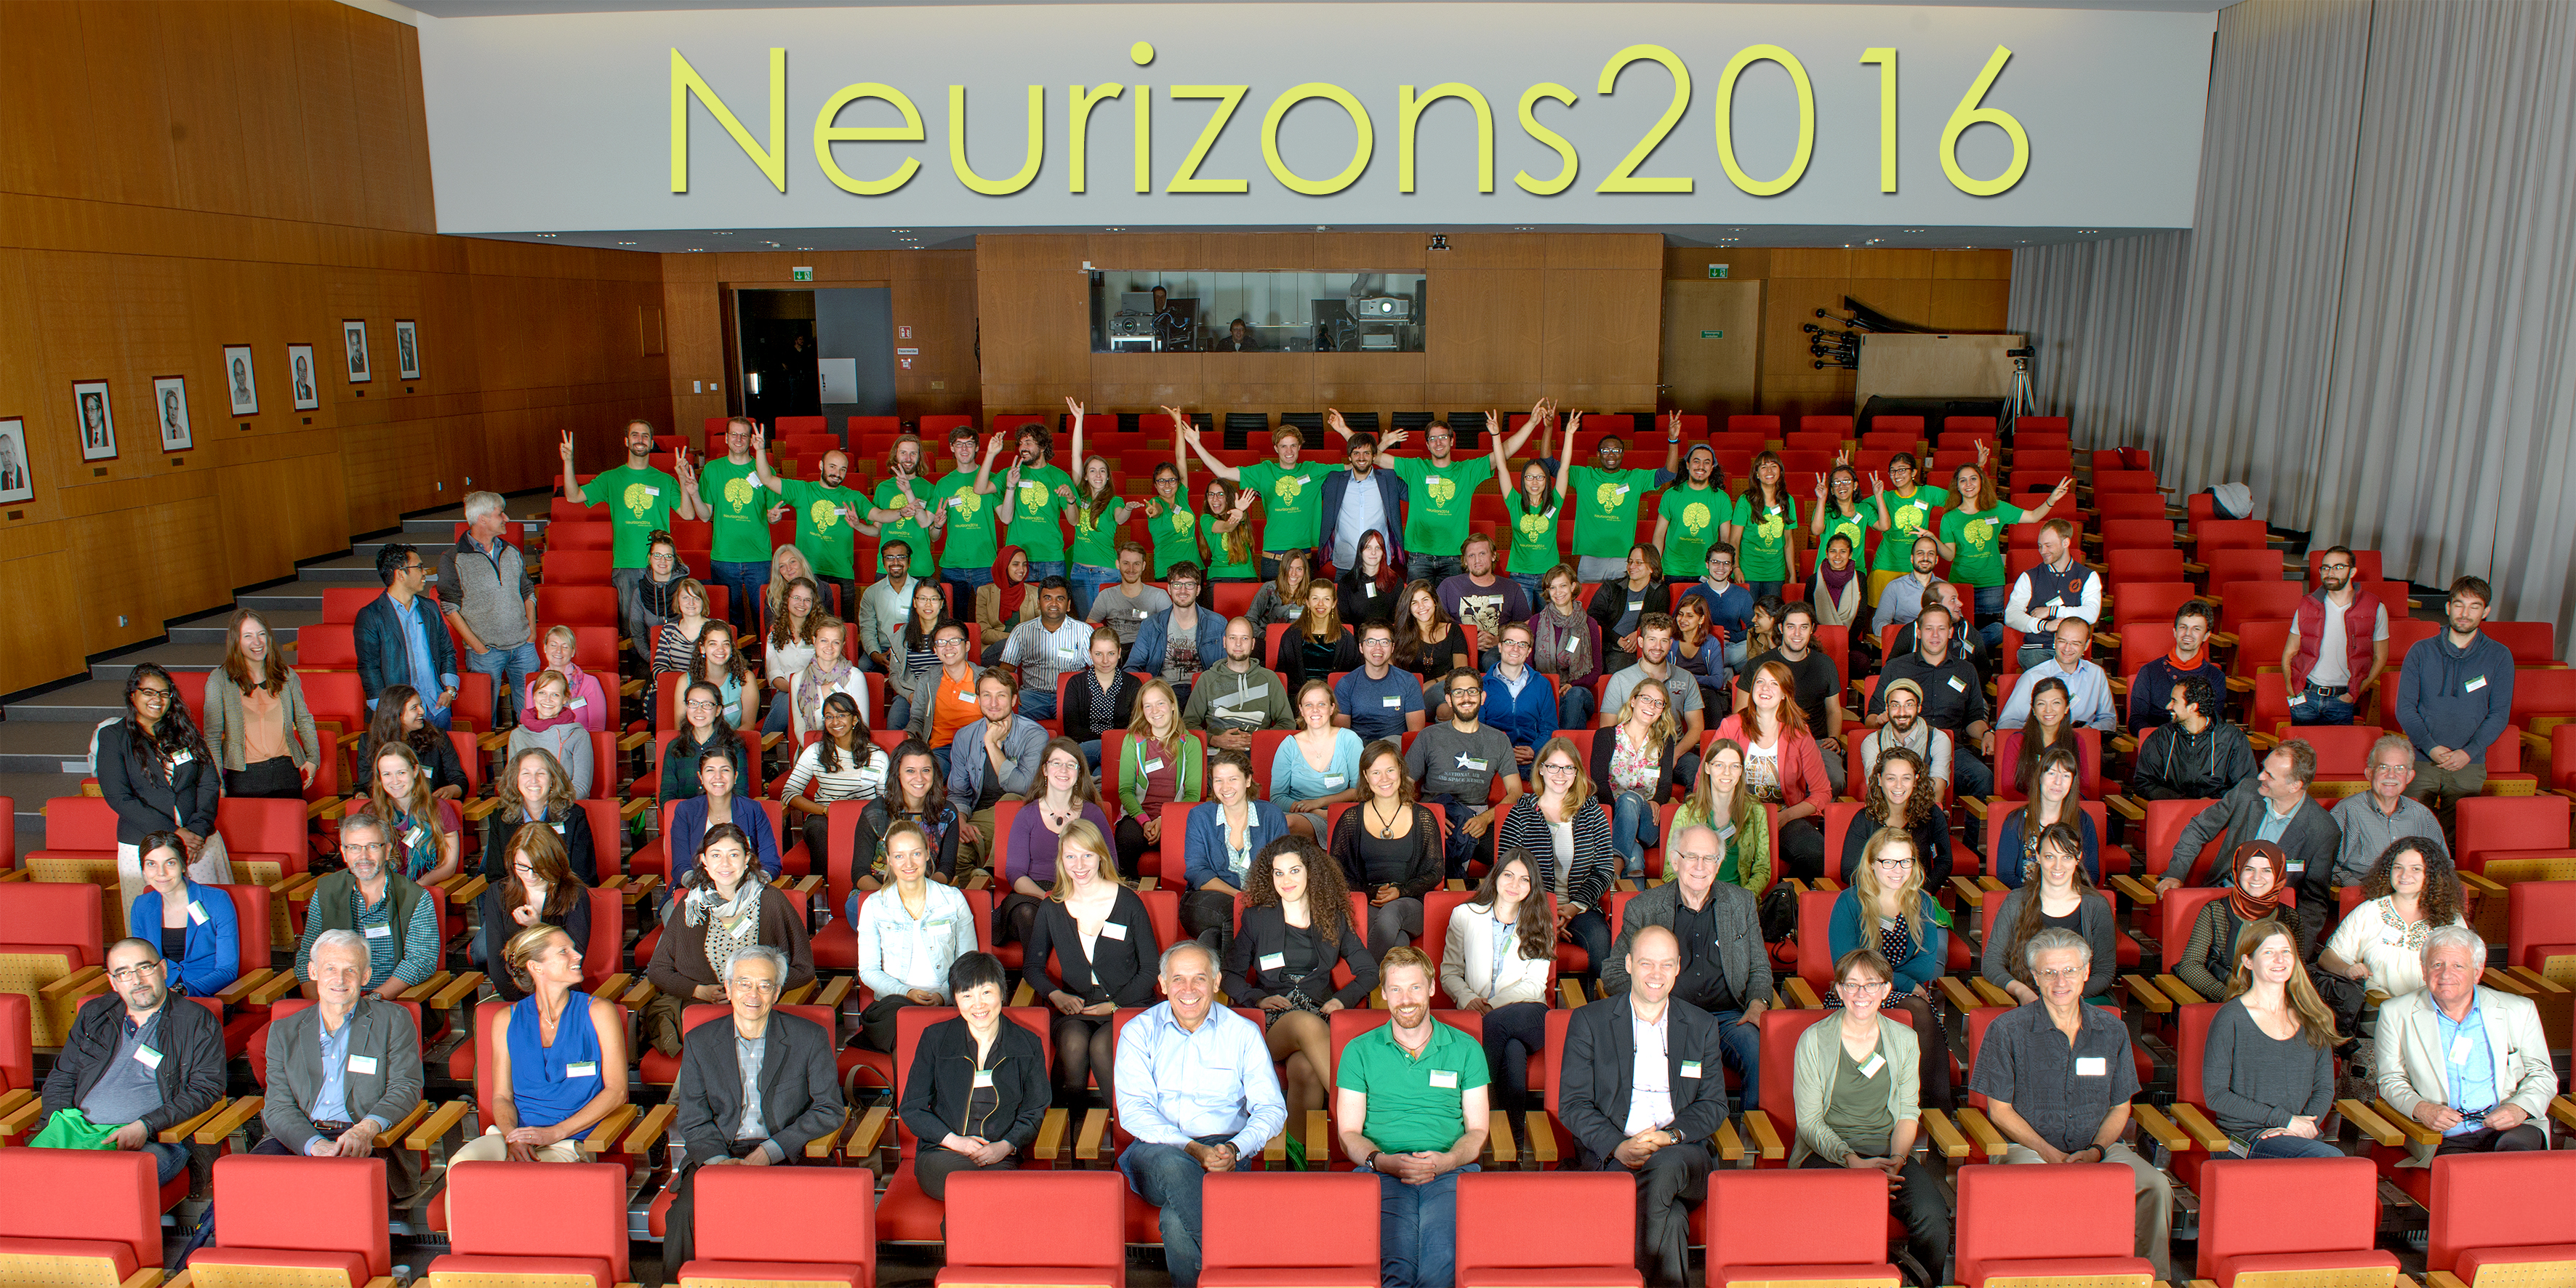 Neurizons2016_GroupPicture